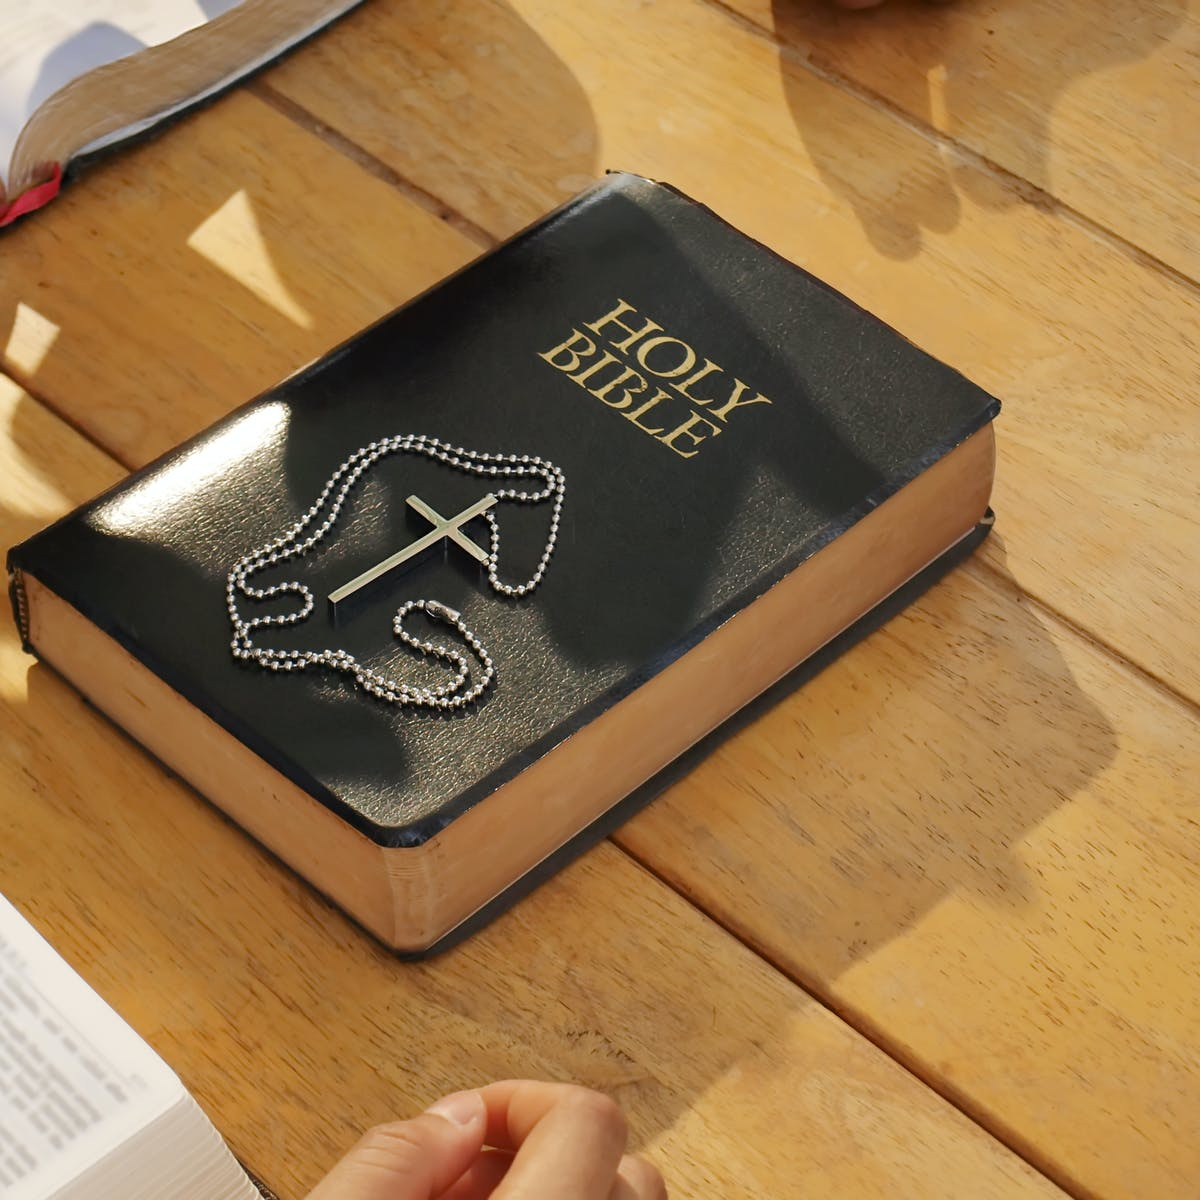 Using the Bible